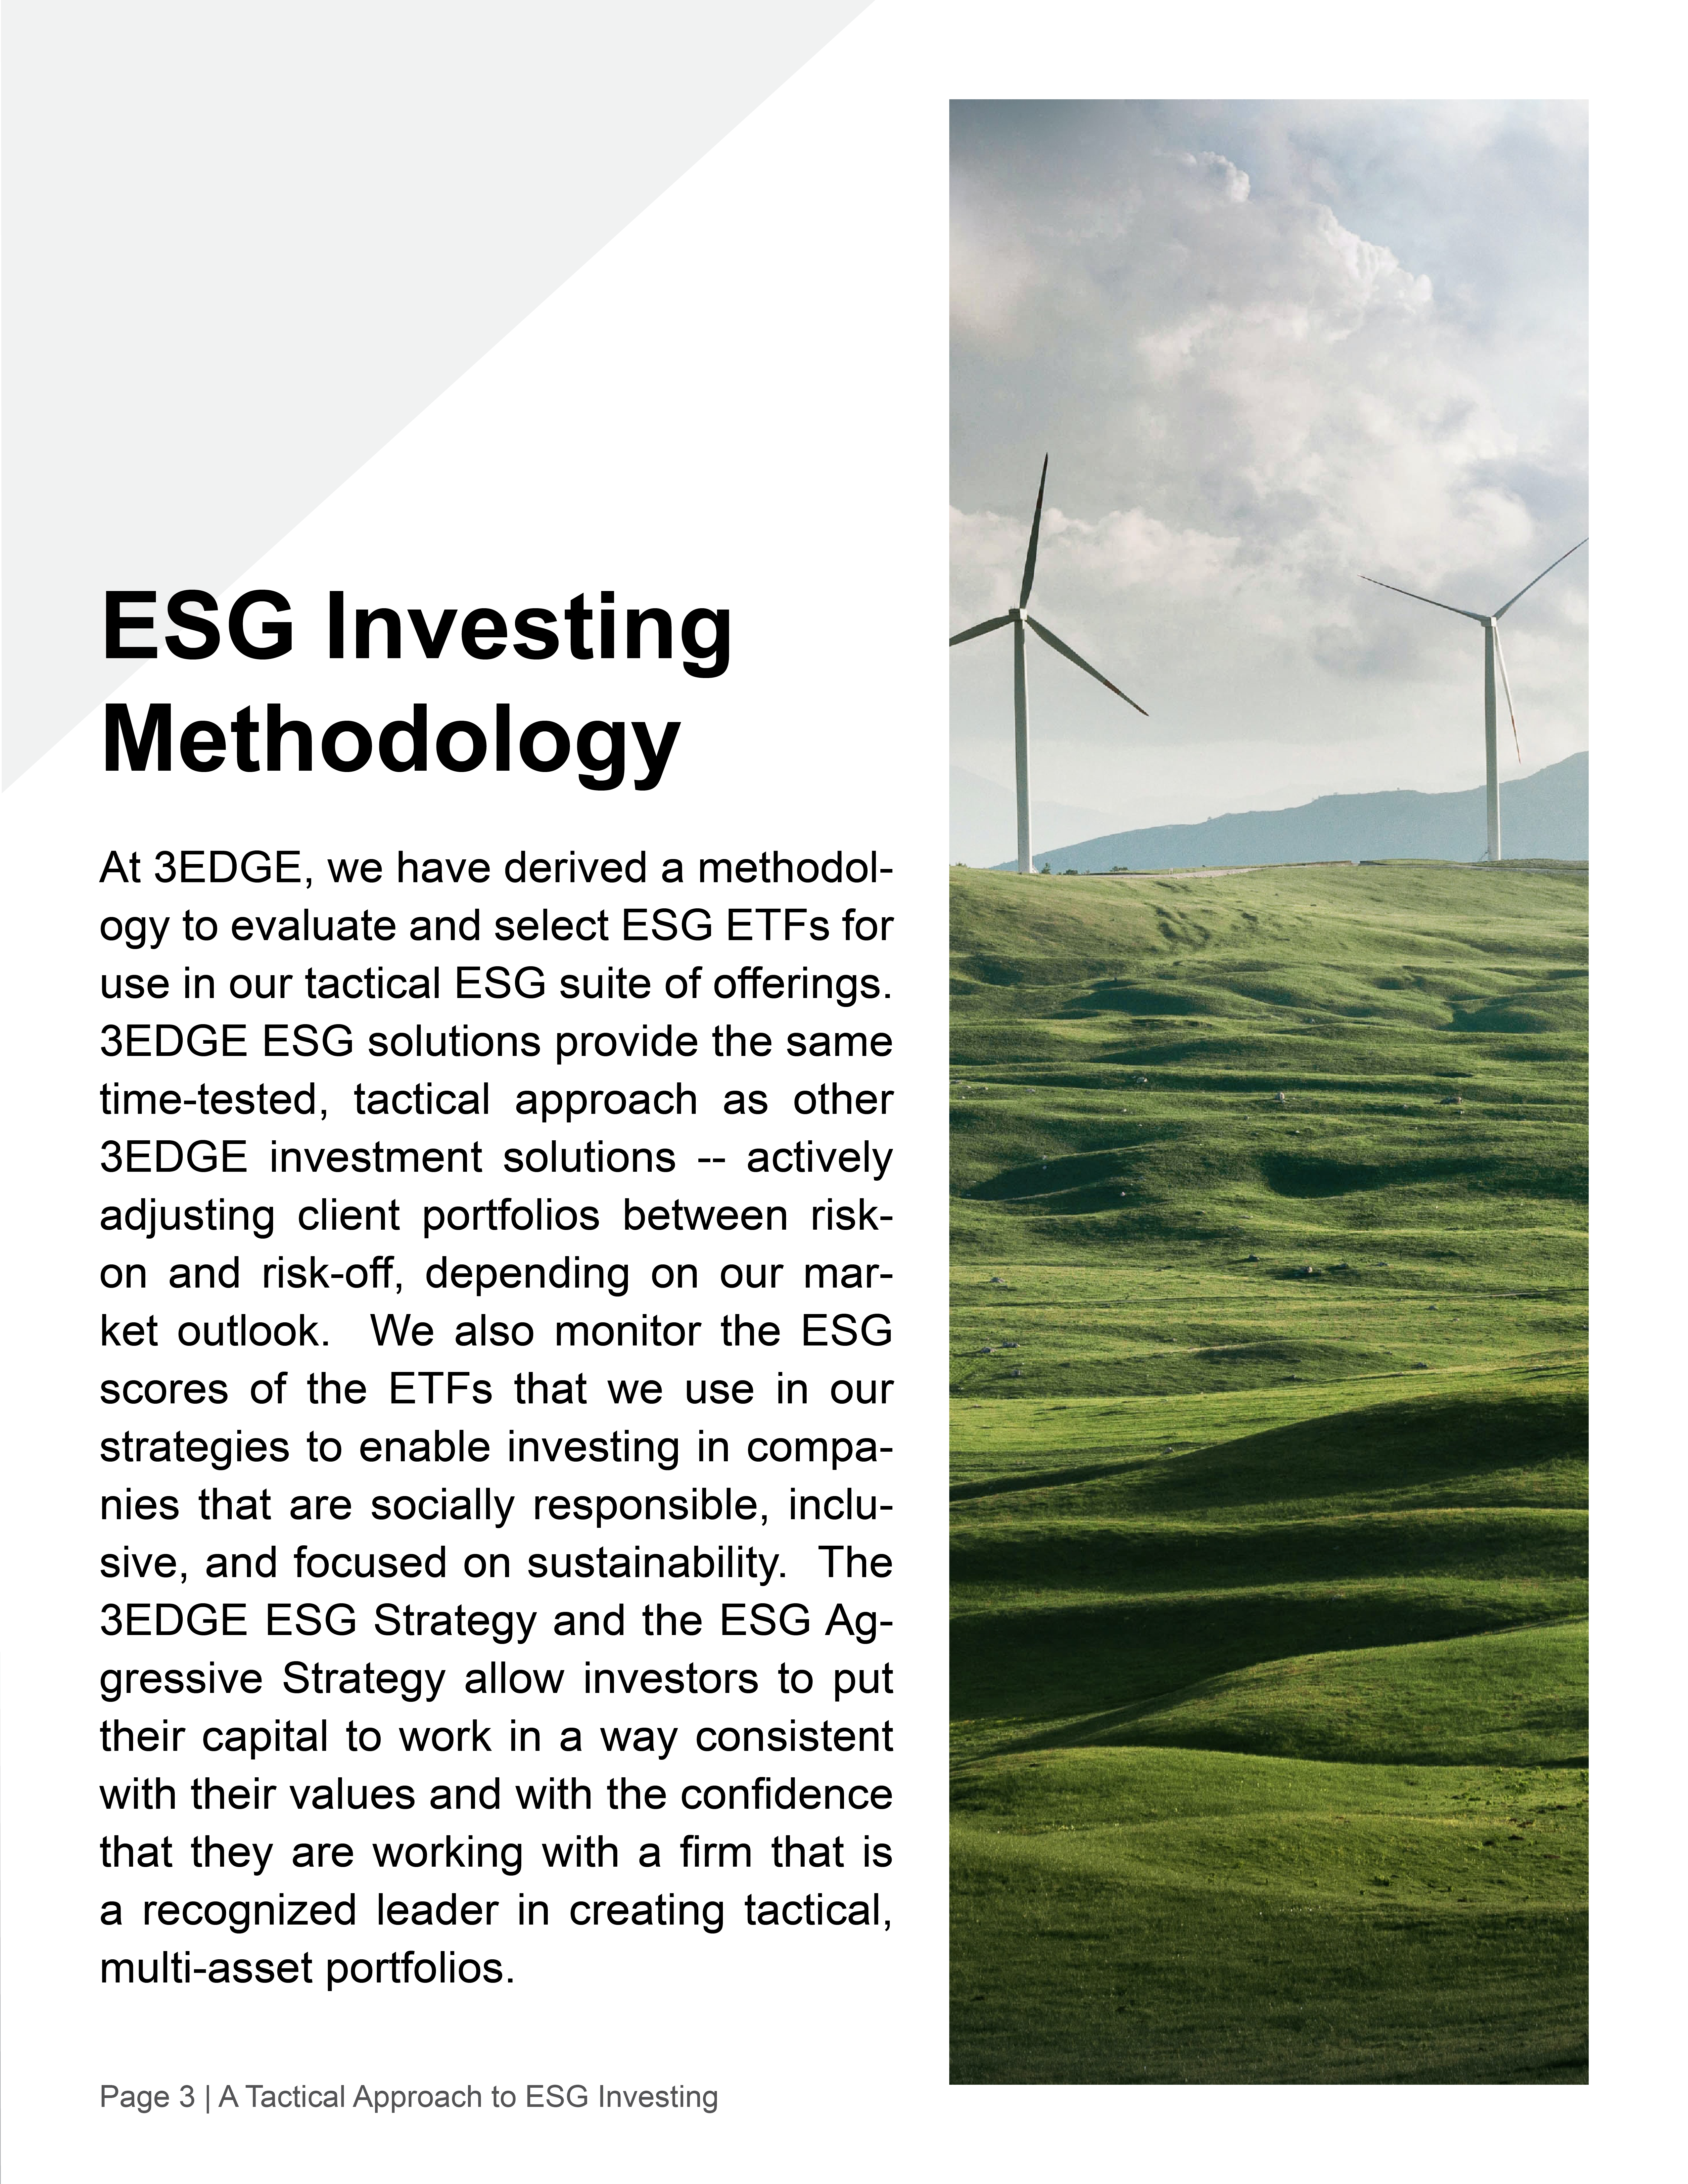 A Tactical Approach to ESG Investing3